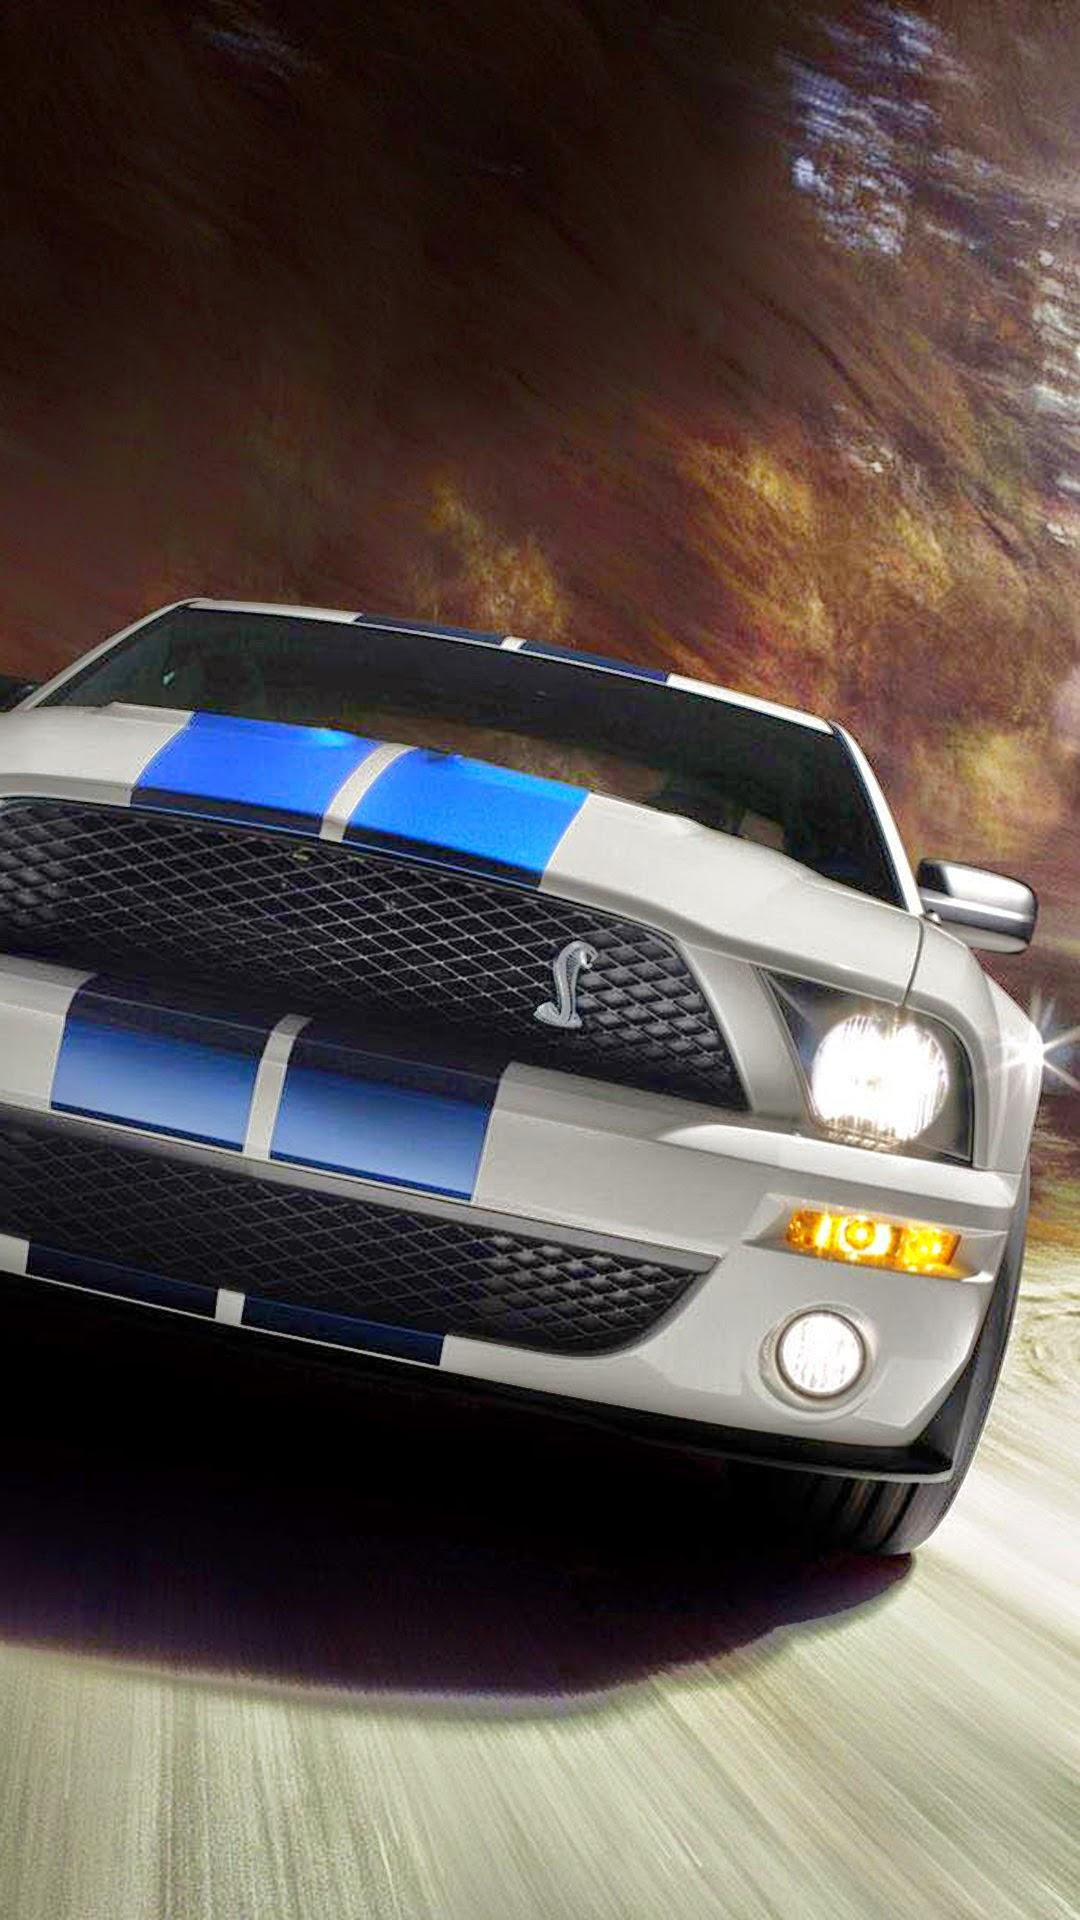 Mustang Gt Wallpaper For Android Apk Download